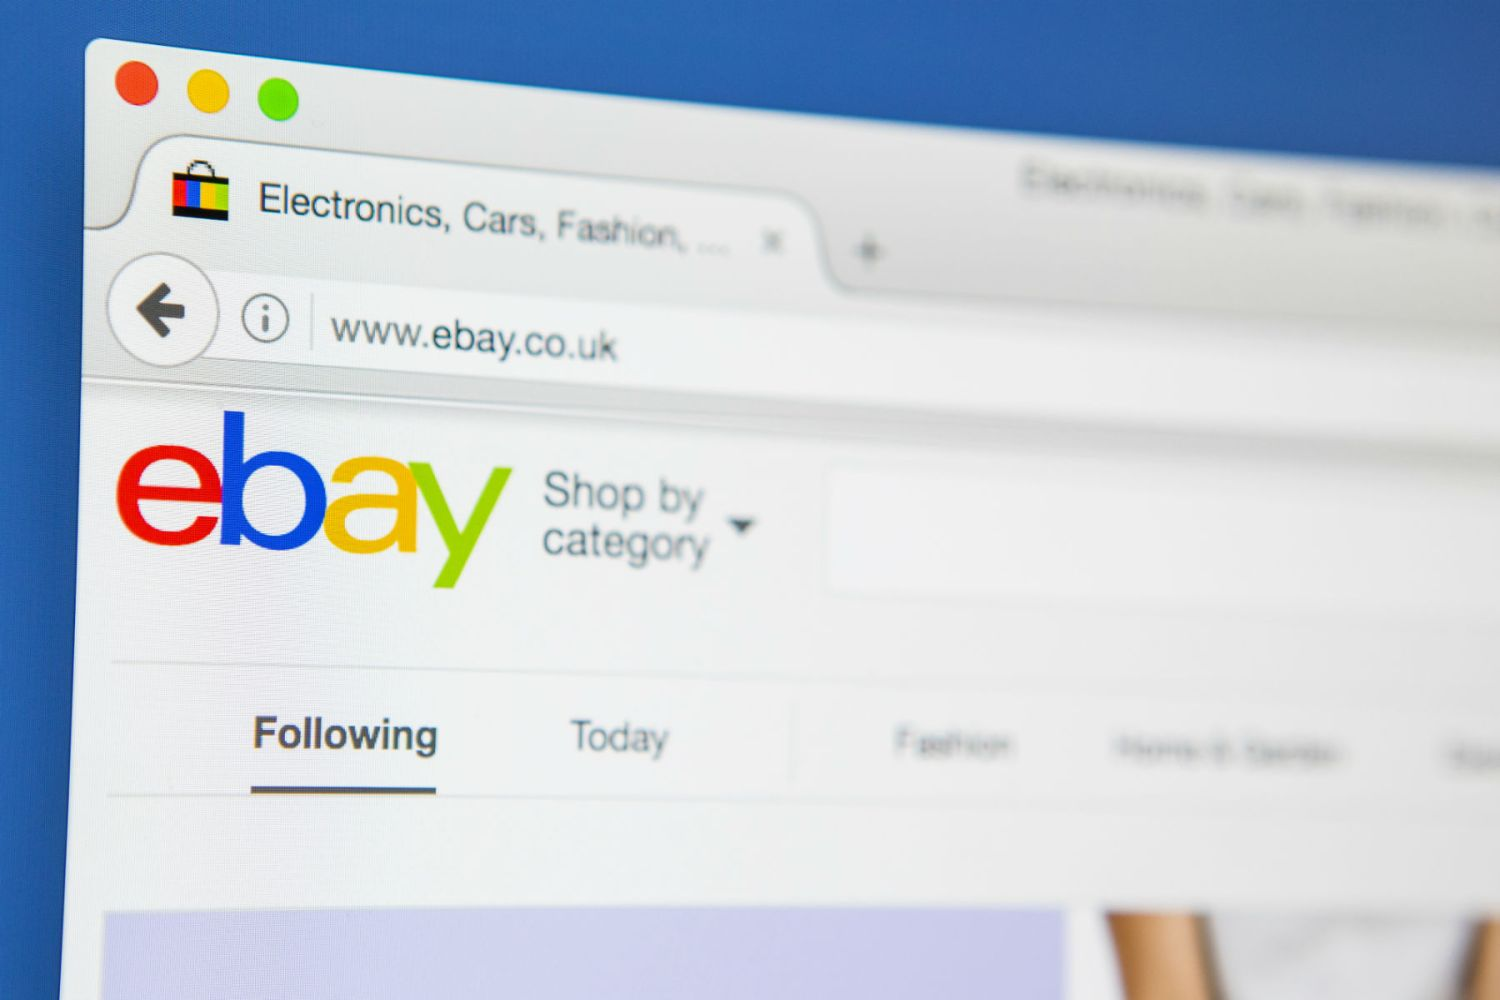 Brits buy car parts every second on eBay